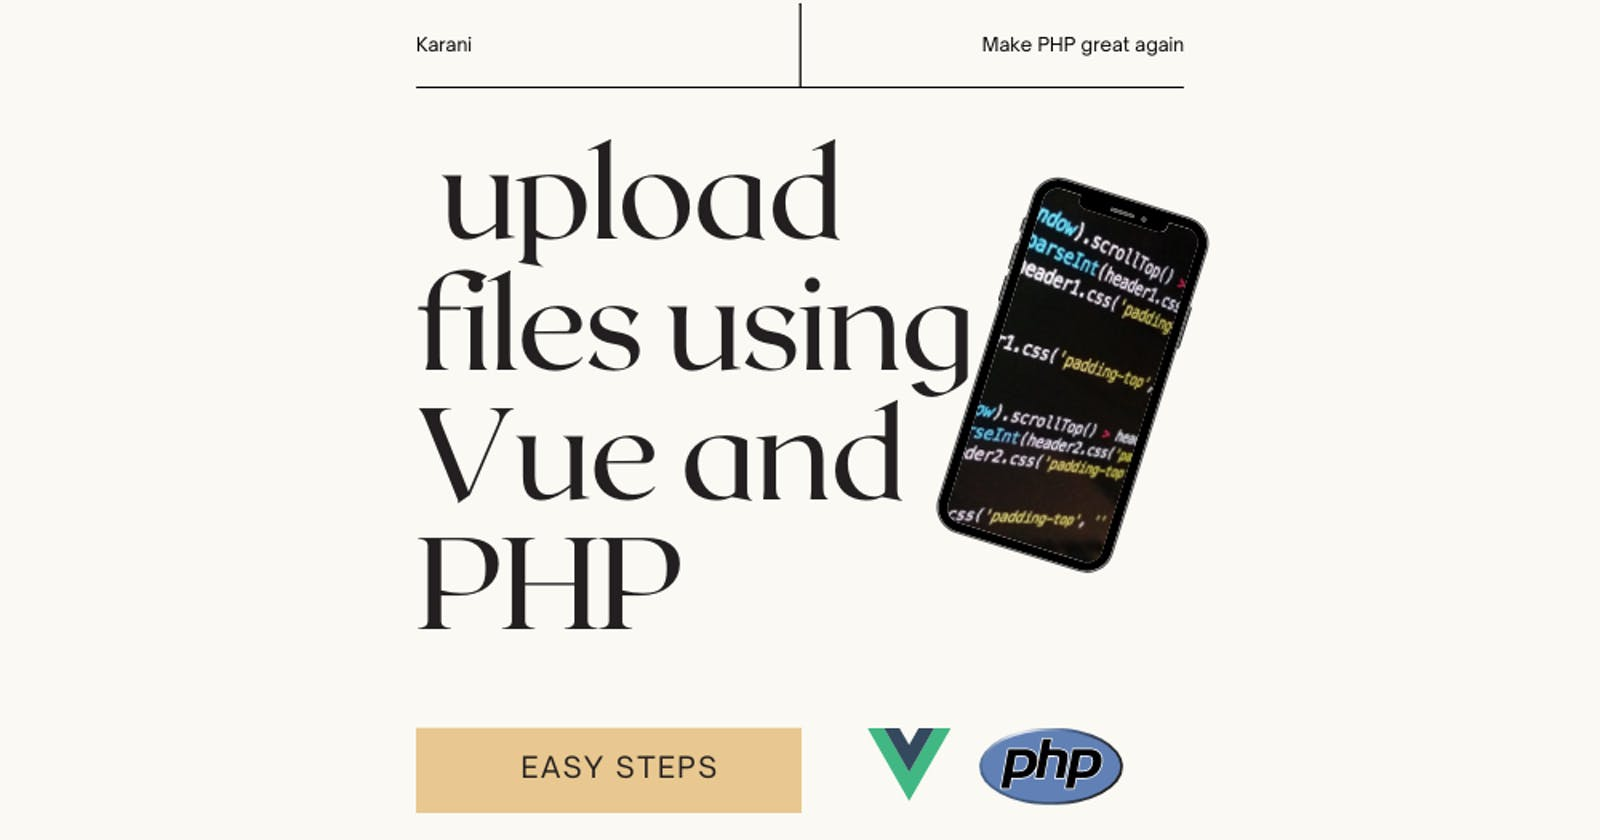 File uploads with Vue and PHP